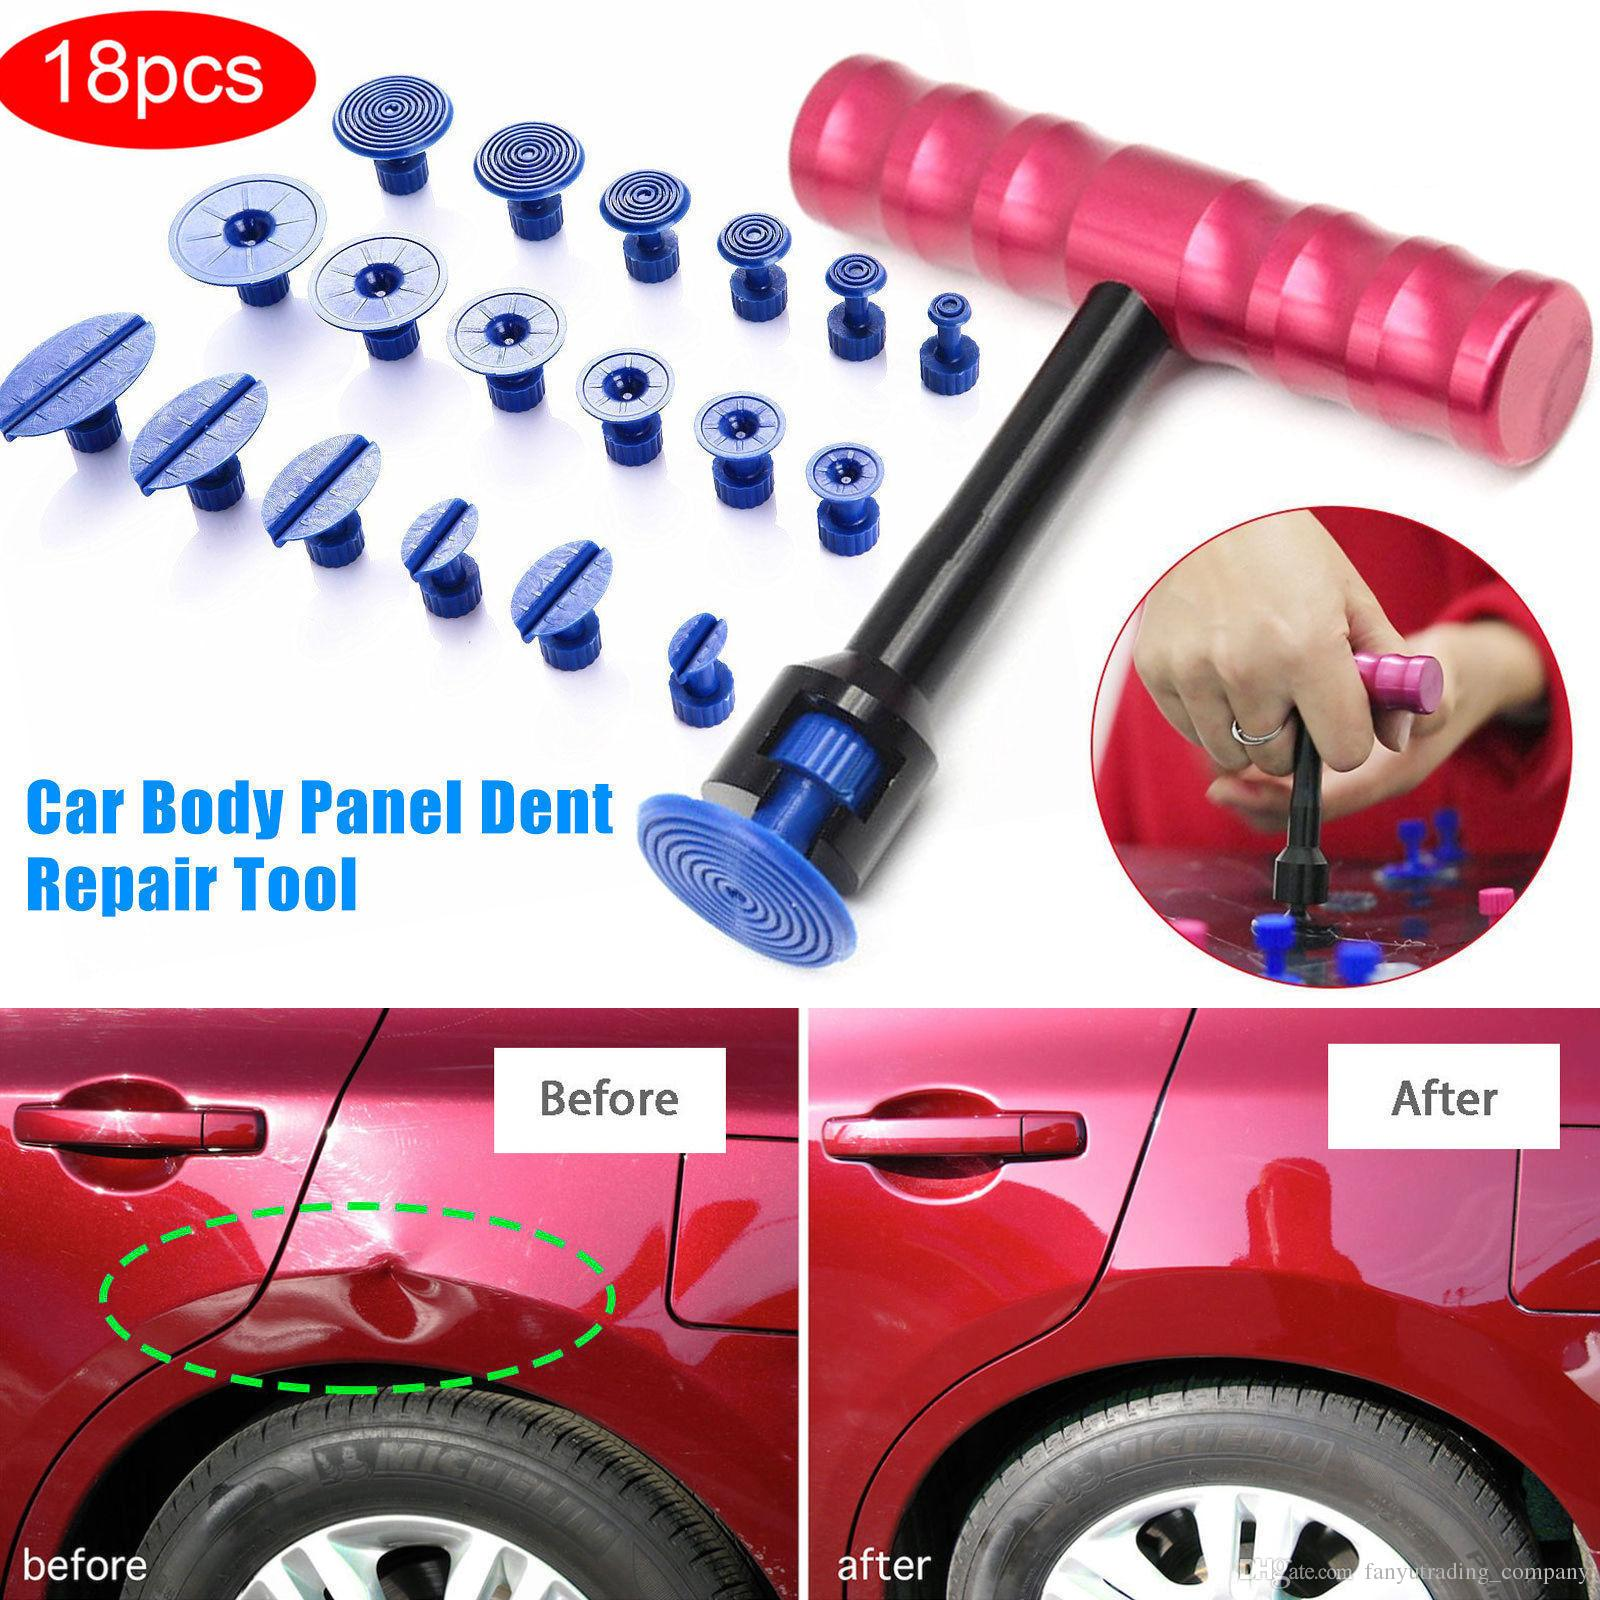 TOPNEW Paintless Dent Repair DIY Kit Metal Tap Down Pen with 9 Heads Tips Dent Removal PDR Tools Blue for Auto Car Body Minor Dent Removal Repair